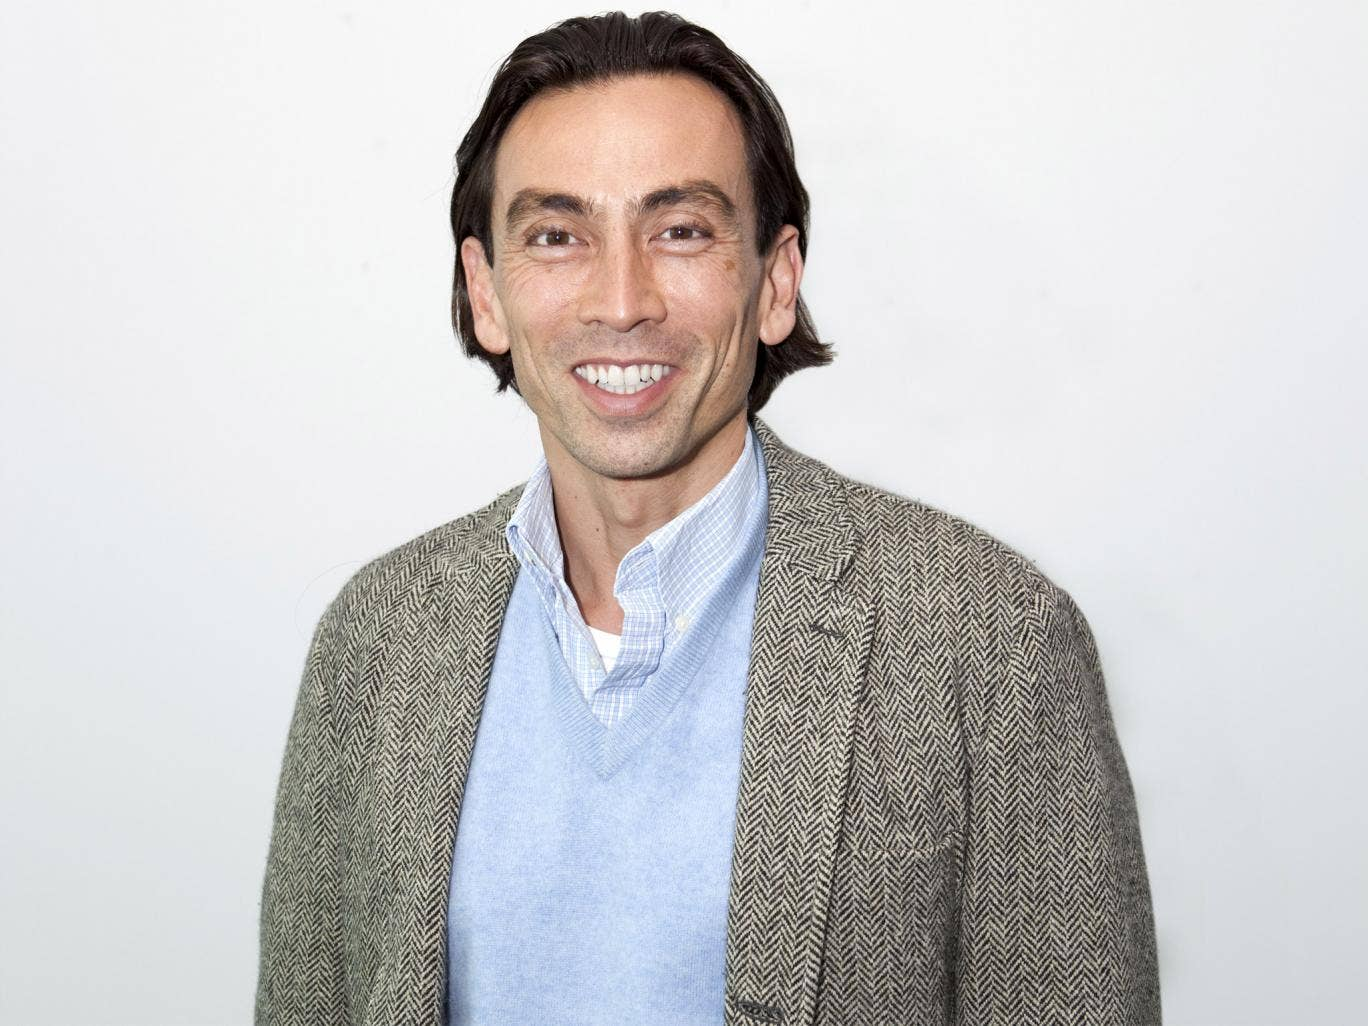 Jason Gissing helped turn Ocado into one of the country's greenest firms